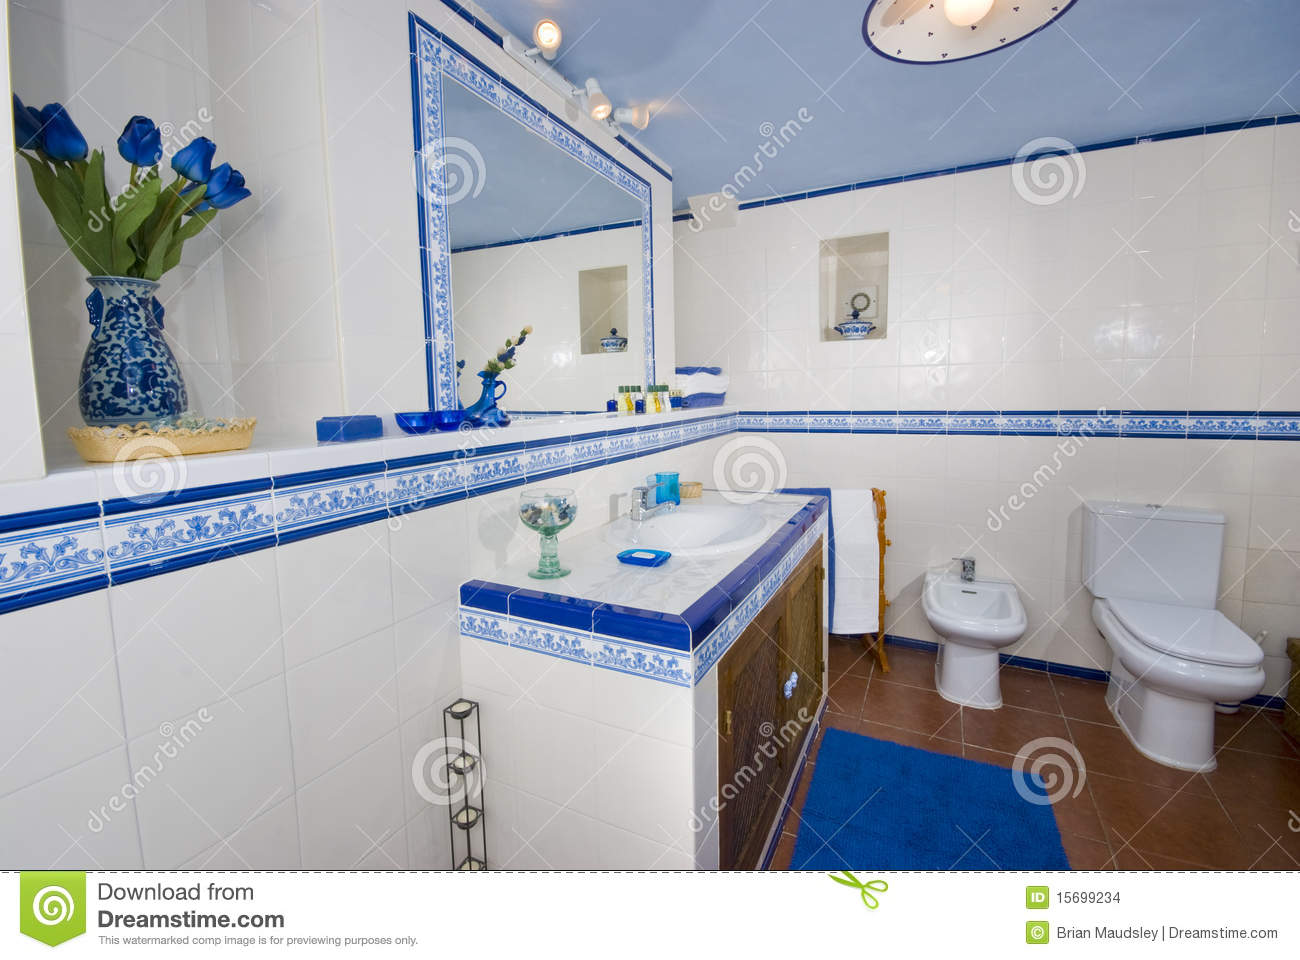 Baño Blanco Con Azul:Rustic White and Blue Bathroom